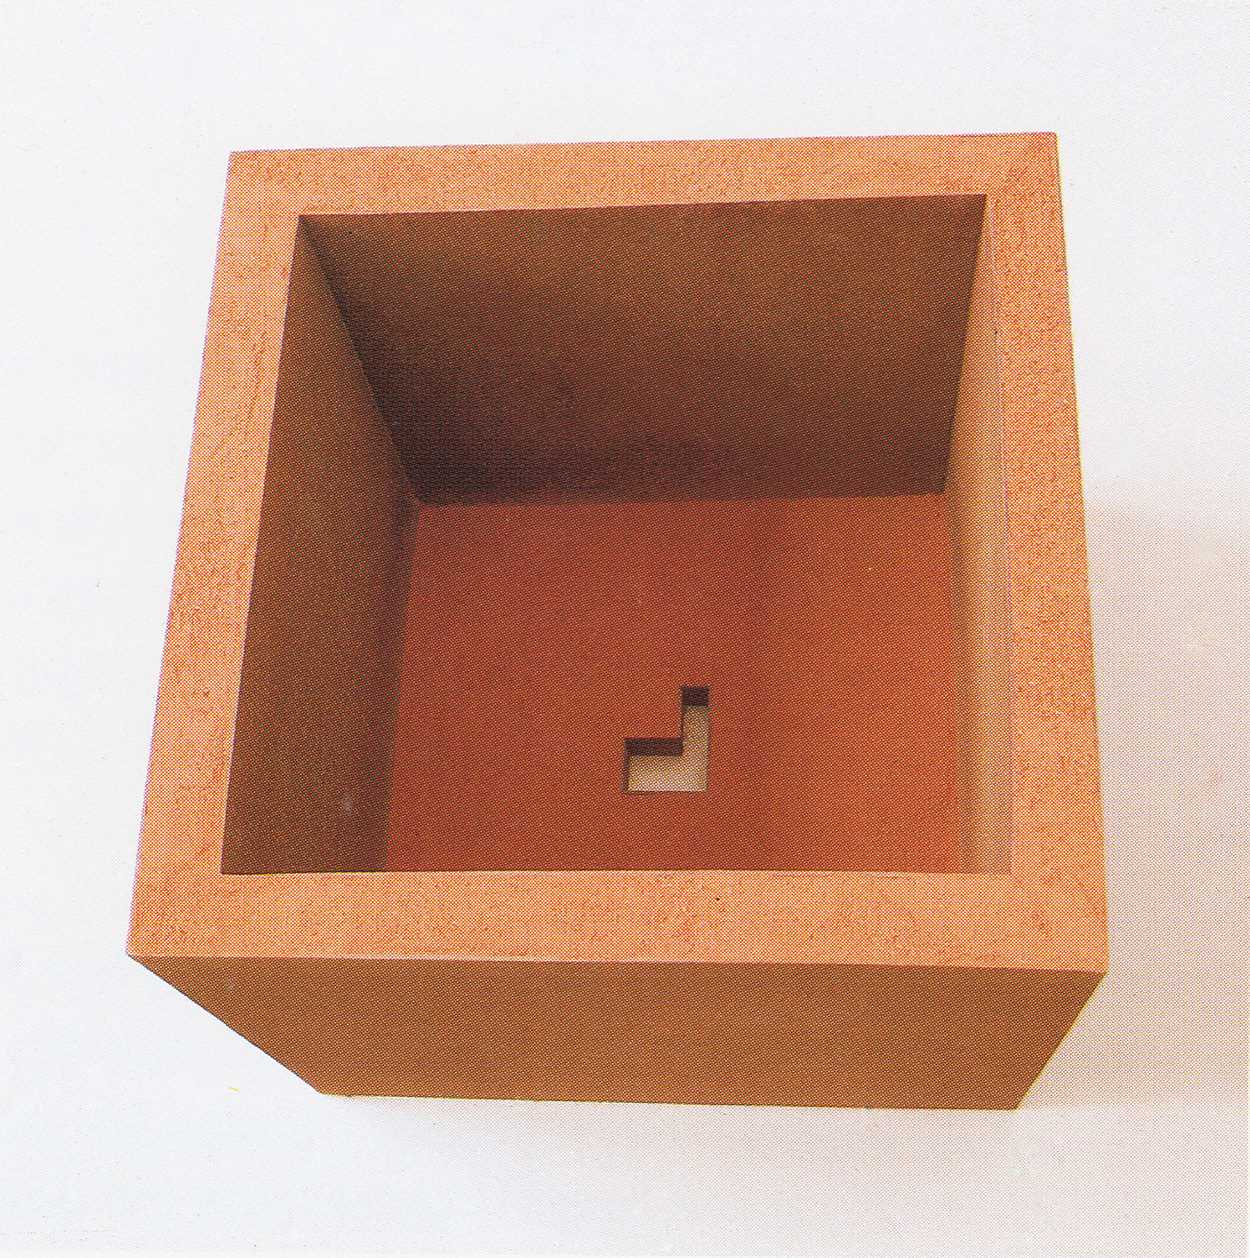 Sink|iron and red sand|49 x 45 x 45 cm|1992